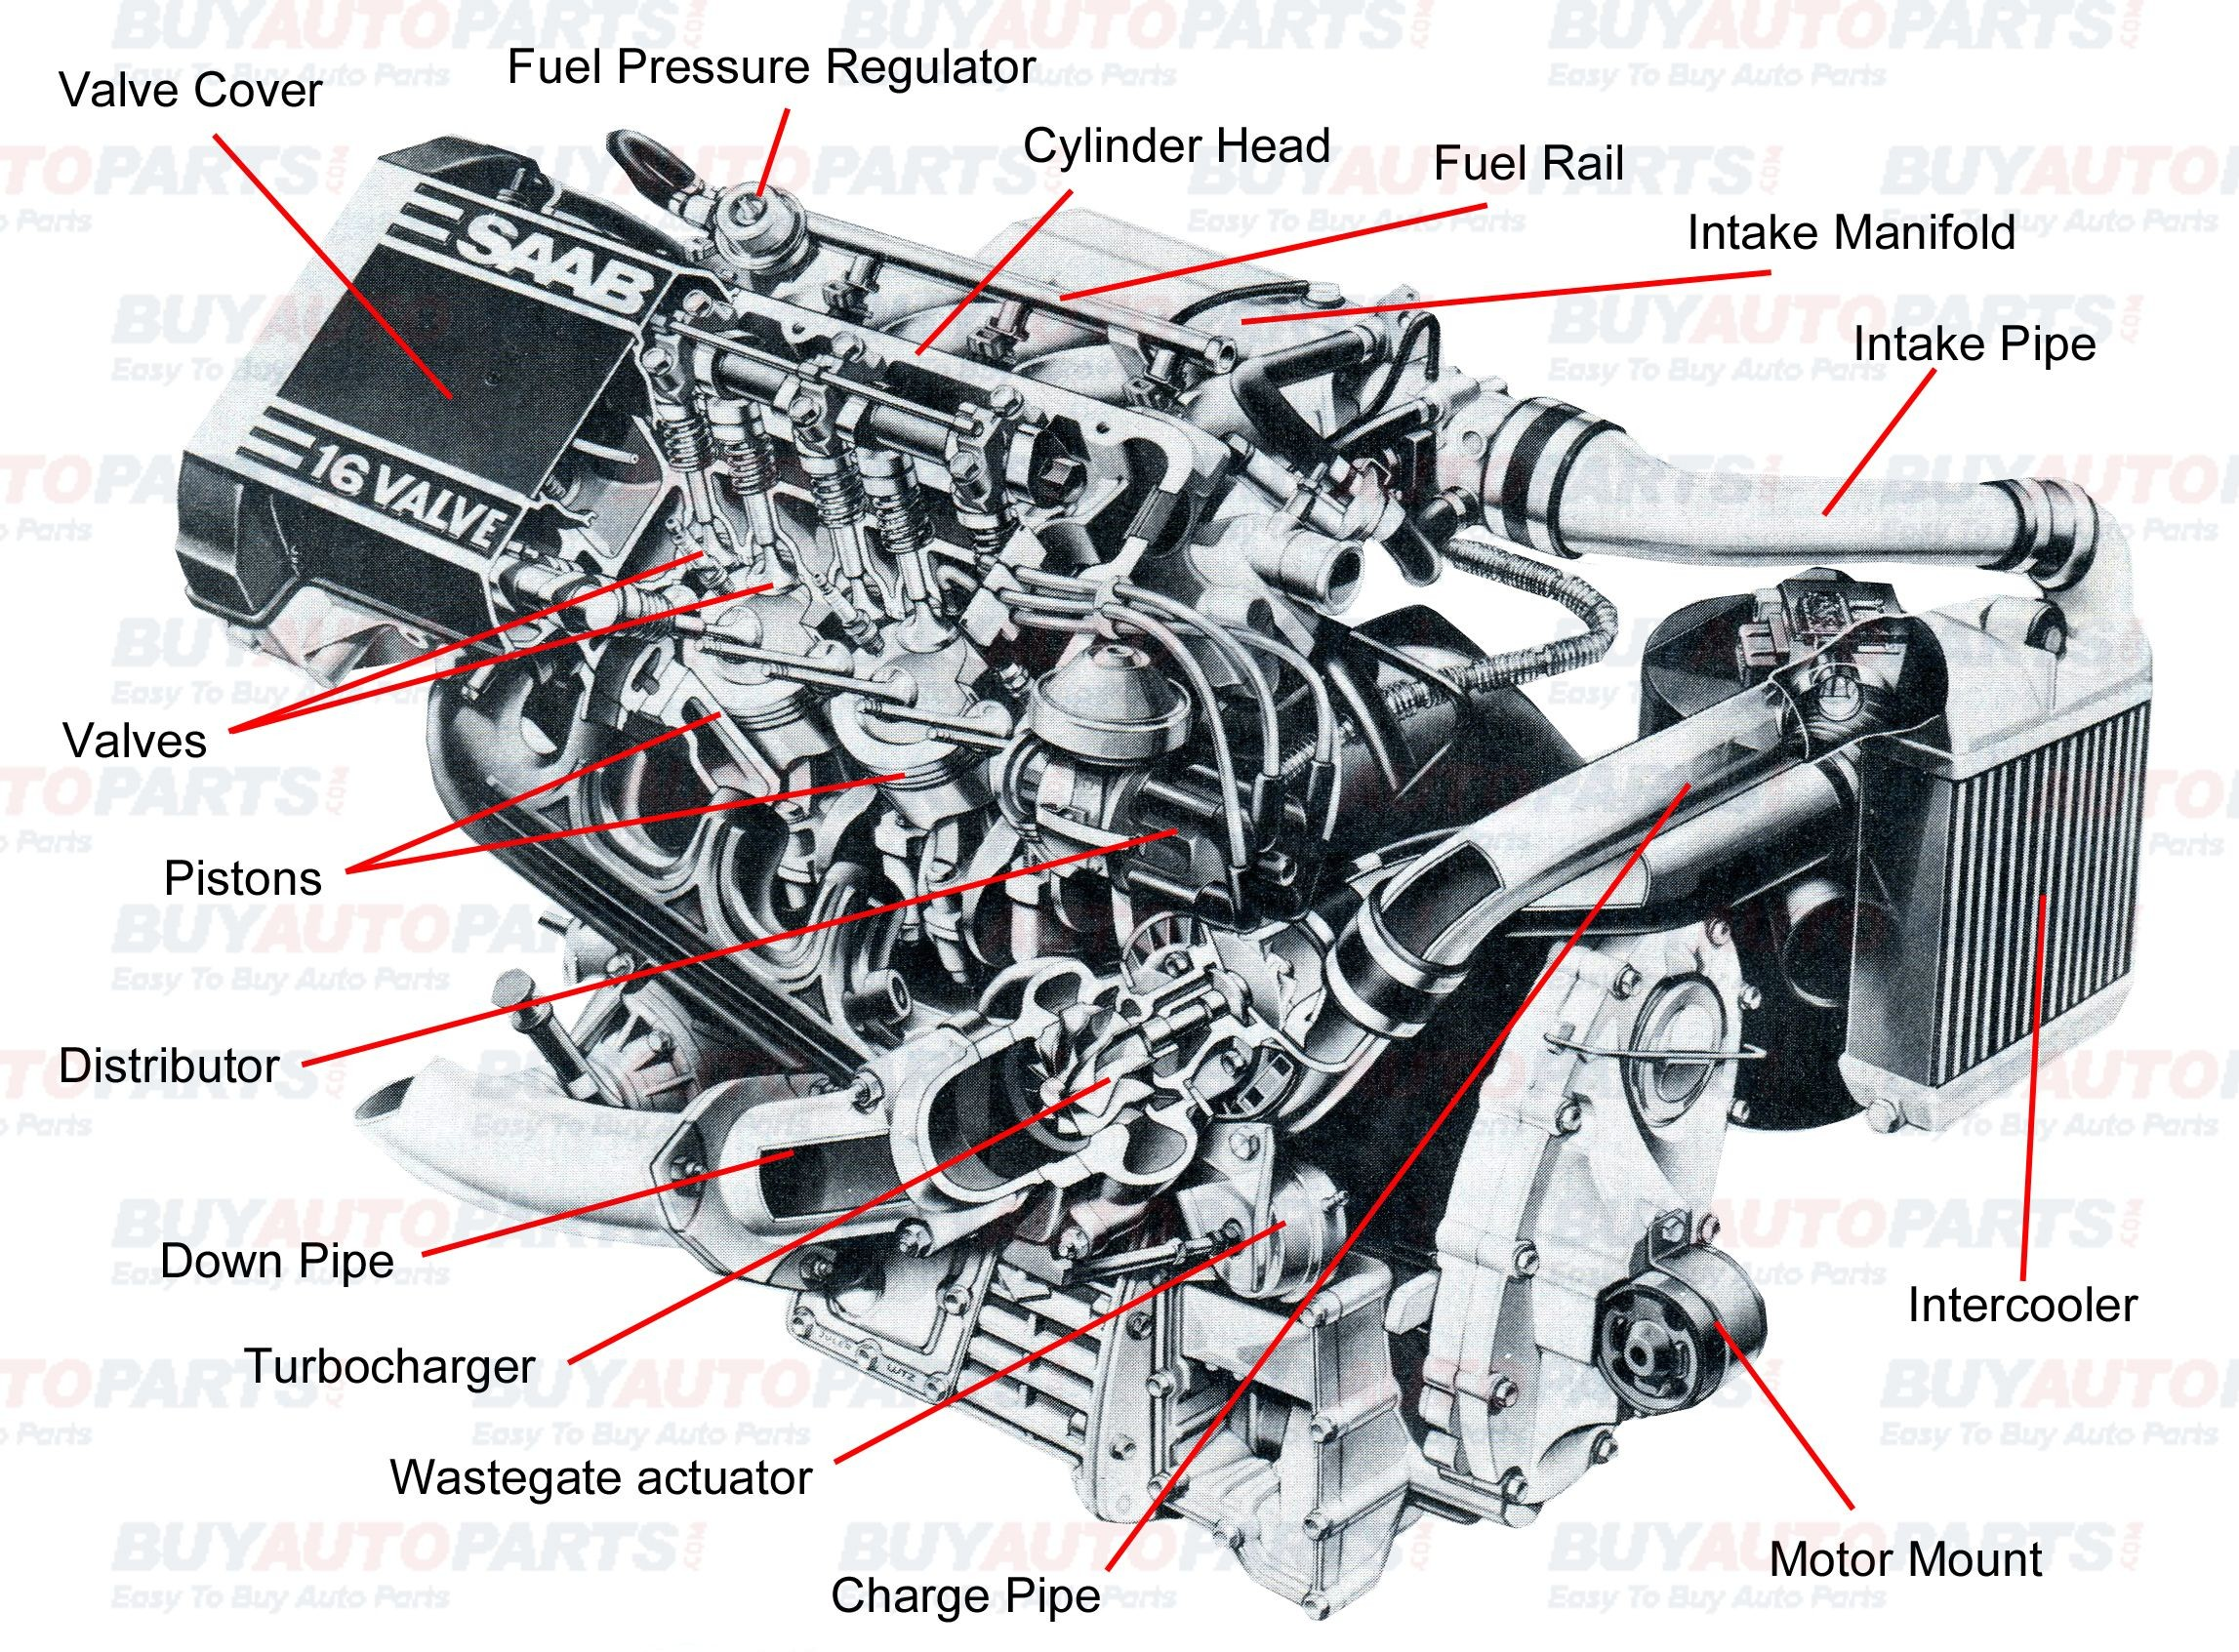 Car Body Part Diagram All Internal Bustion Engines Have the Same Basic Ponents the Of Car Body Part Diagram